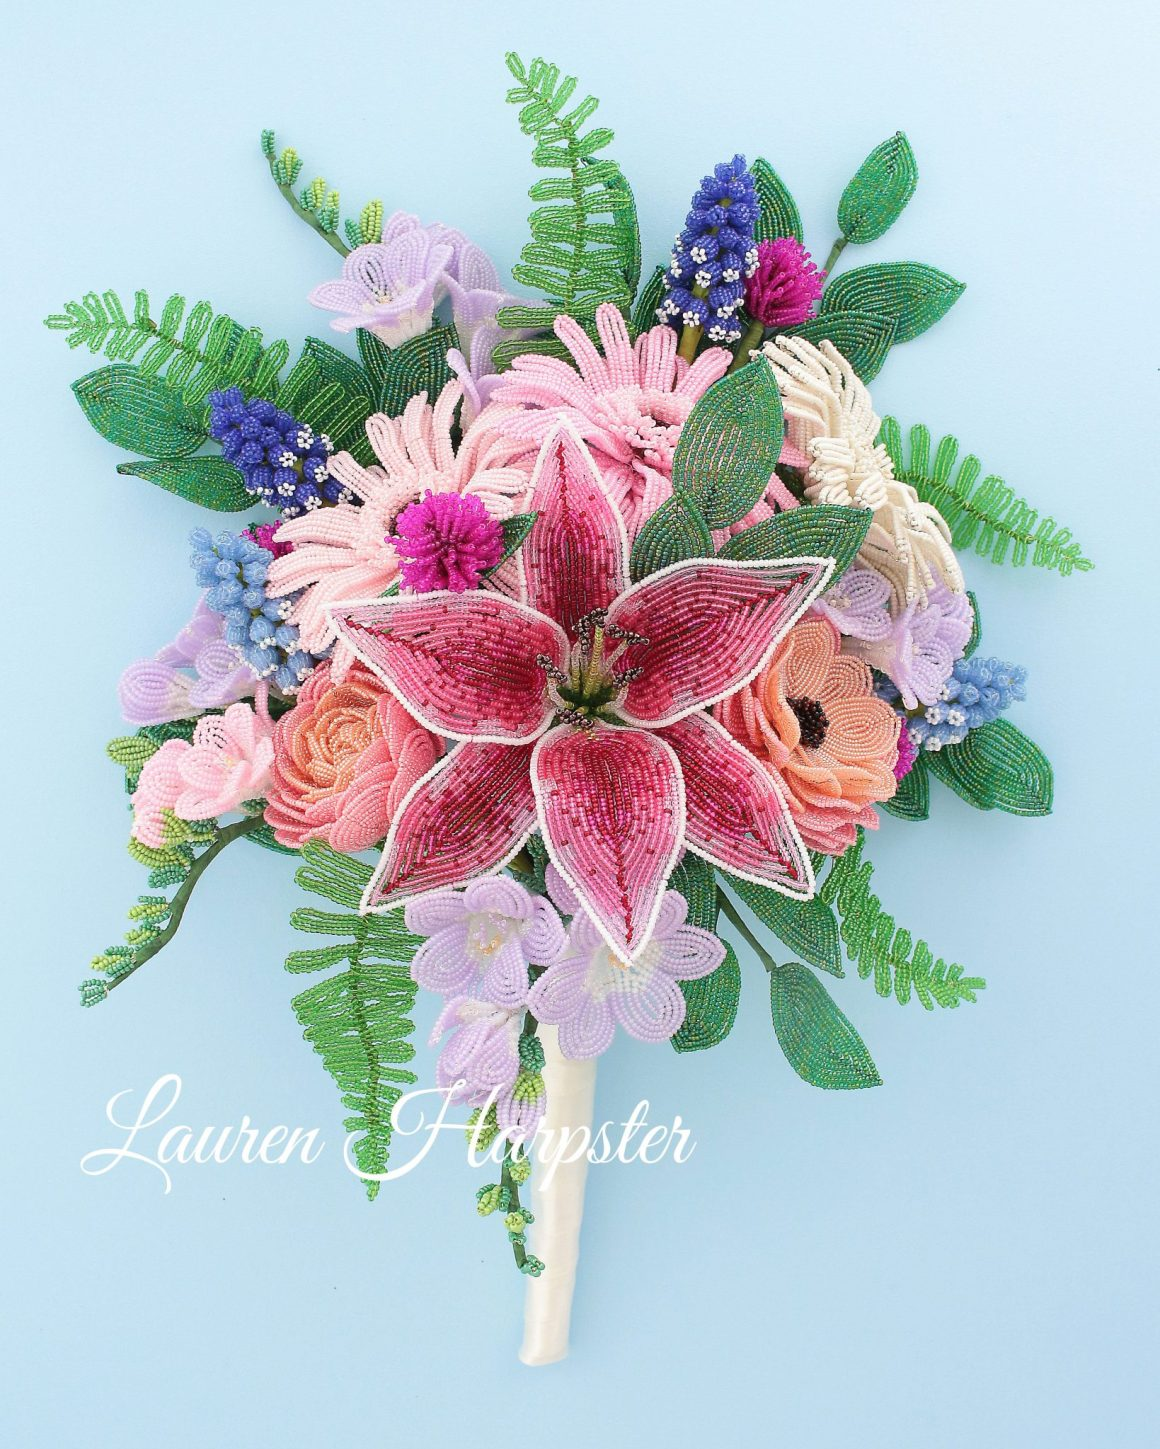 French Beaded Flower Bouquet by Lauren Harpster